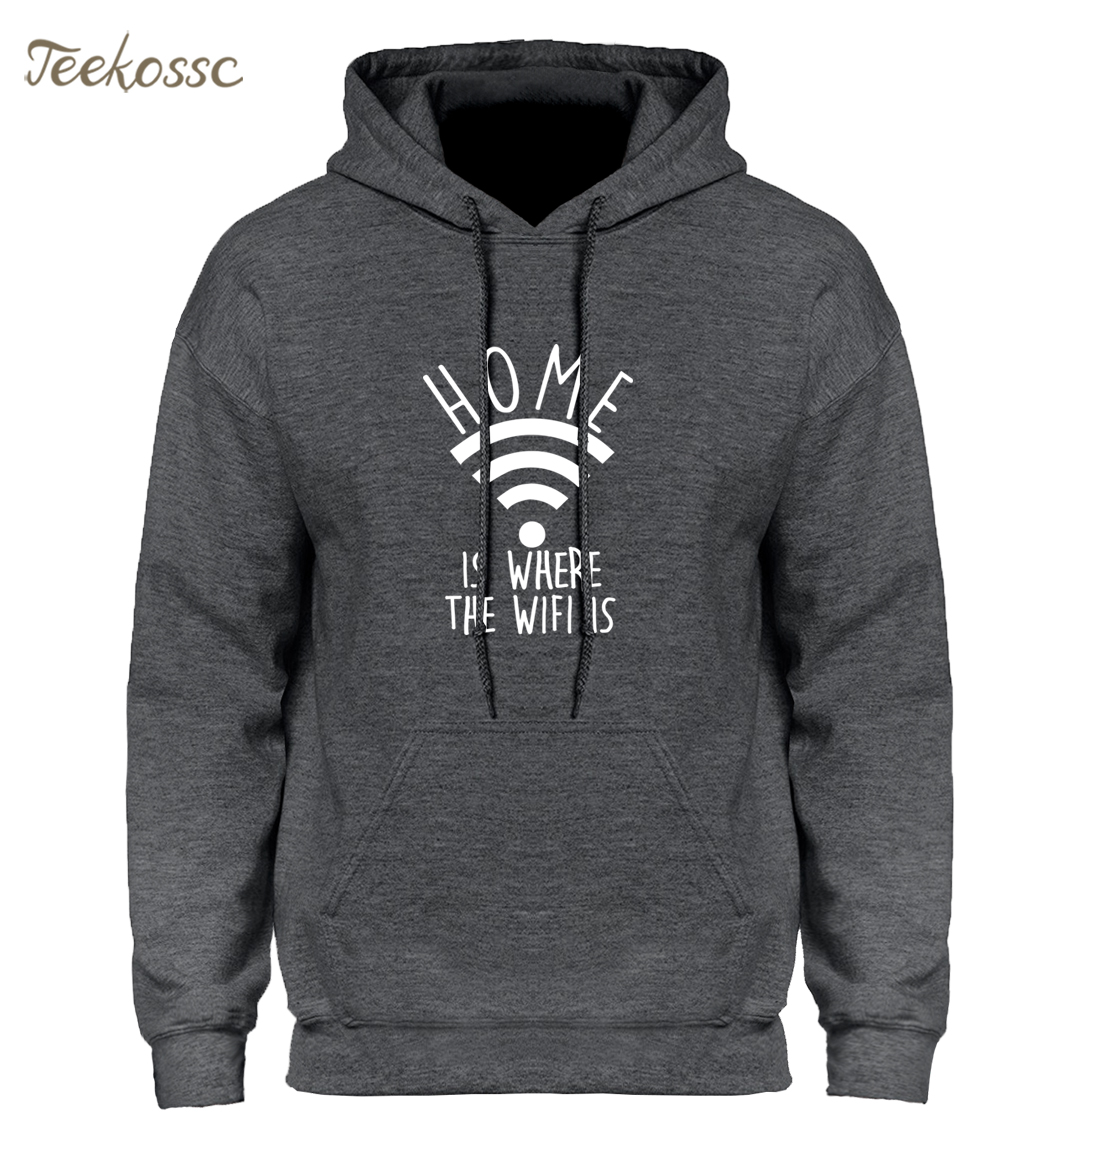 Home is Where The WiFi is Hoodie Men Funny Hoodies Mens 2018 Winter Autumn Hooded  Sweatshirt Internet Sweatshirs Brand Clothing